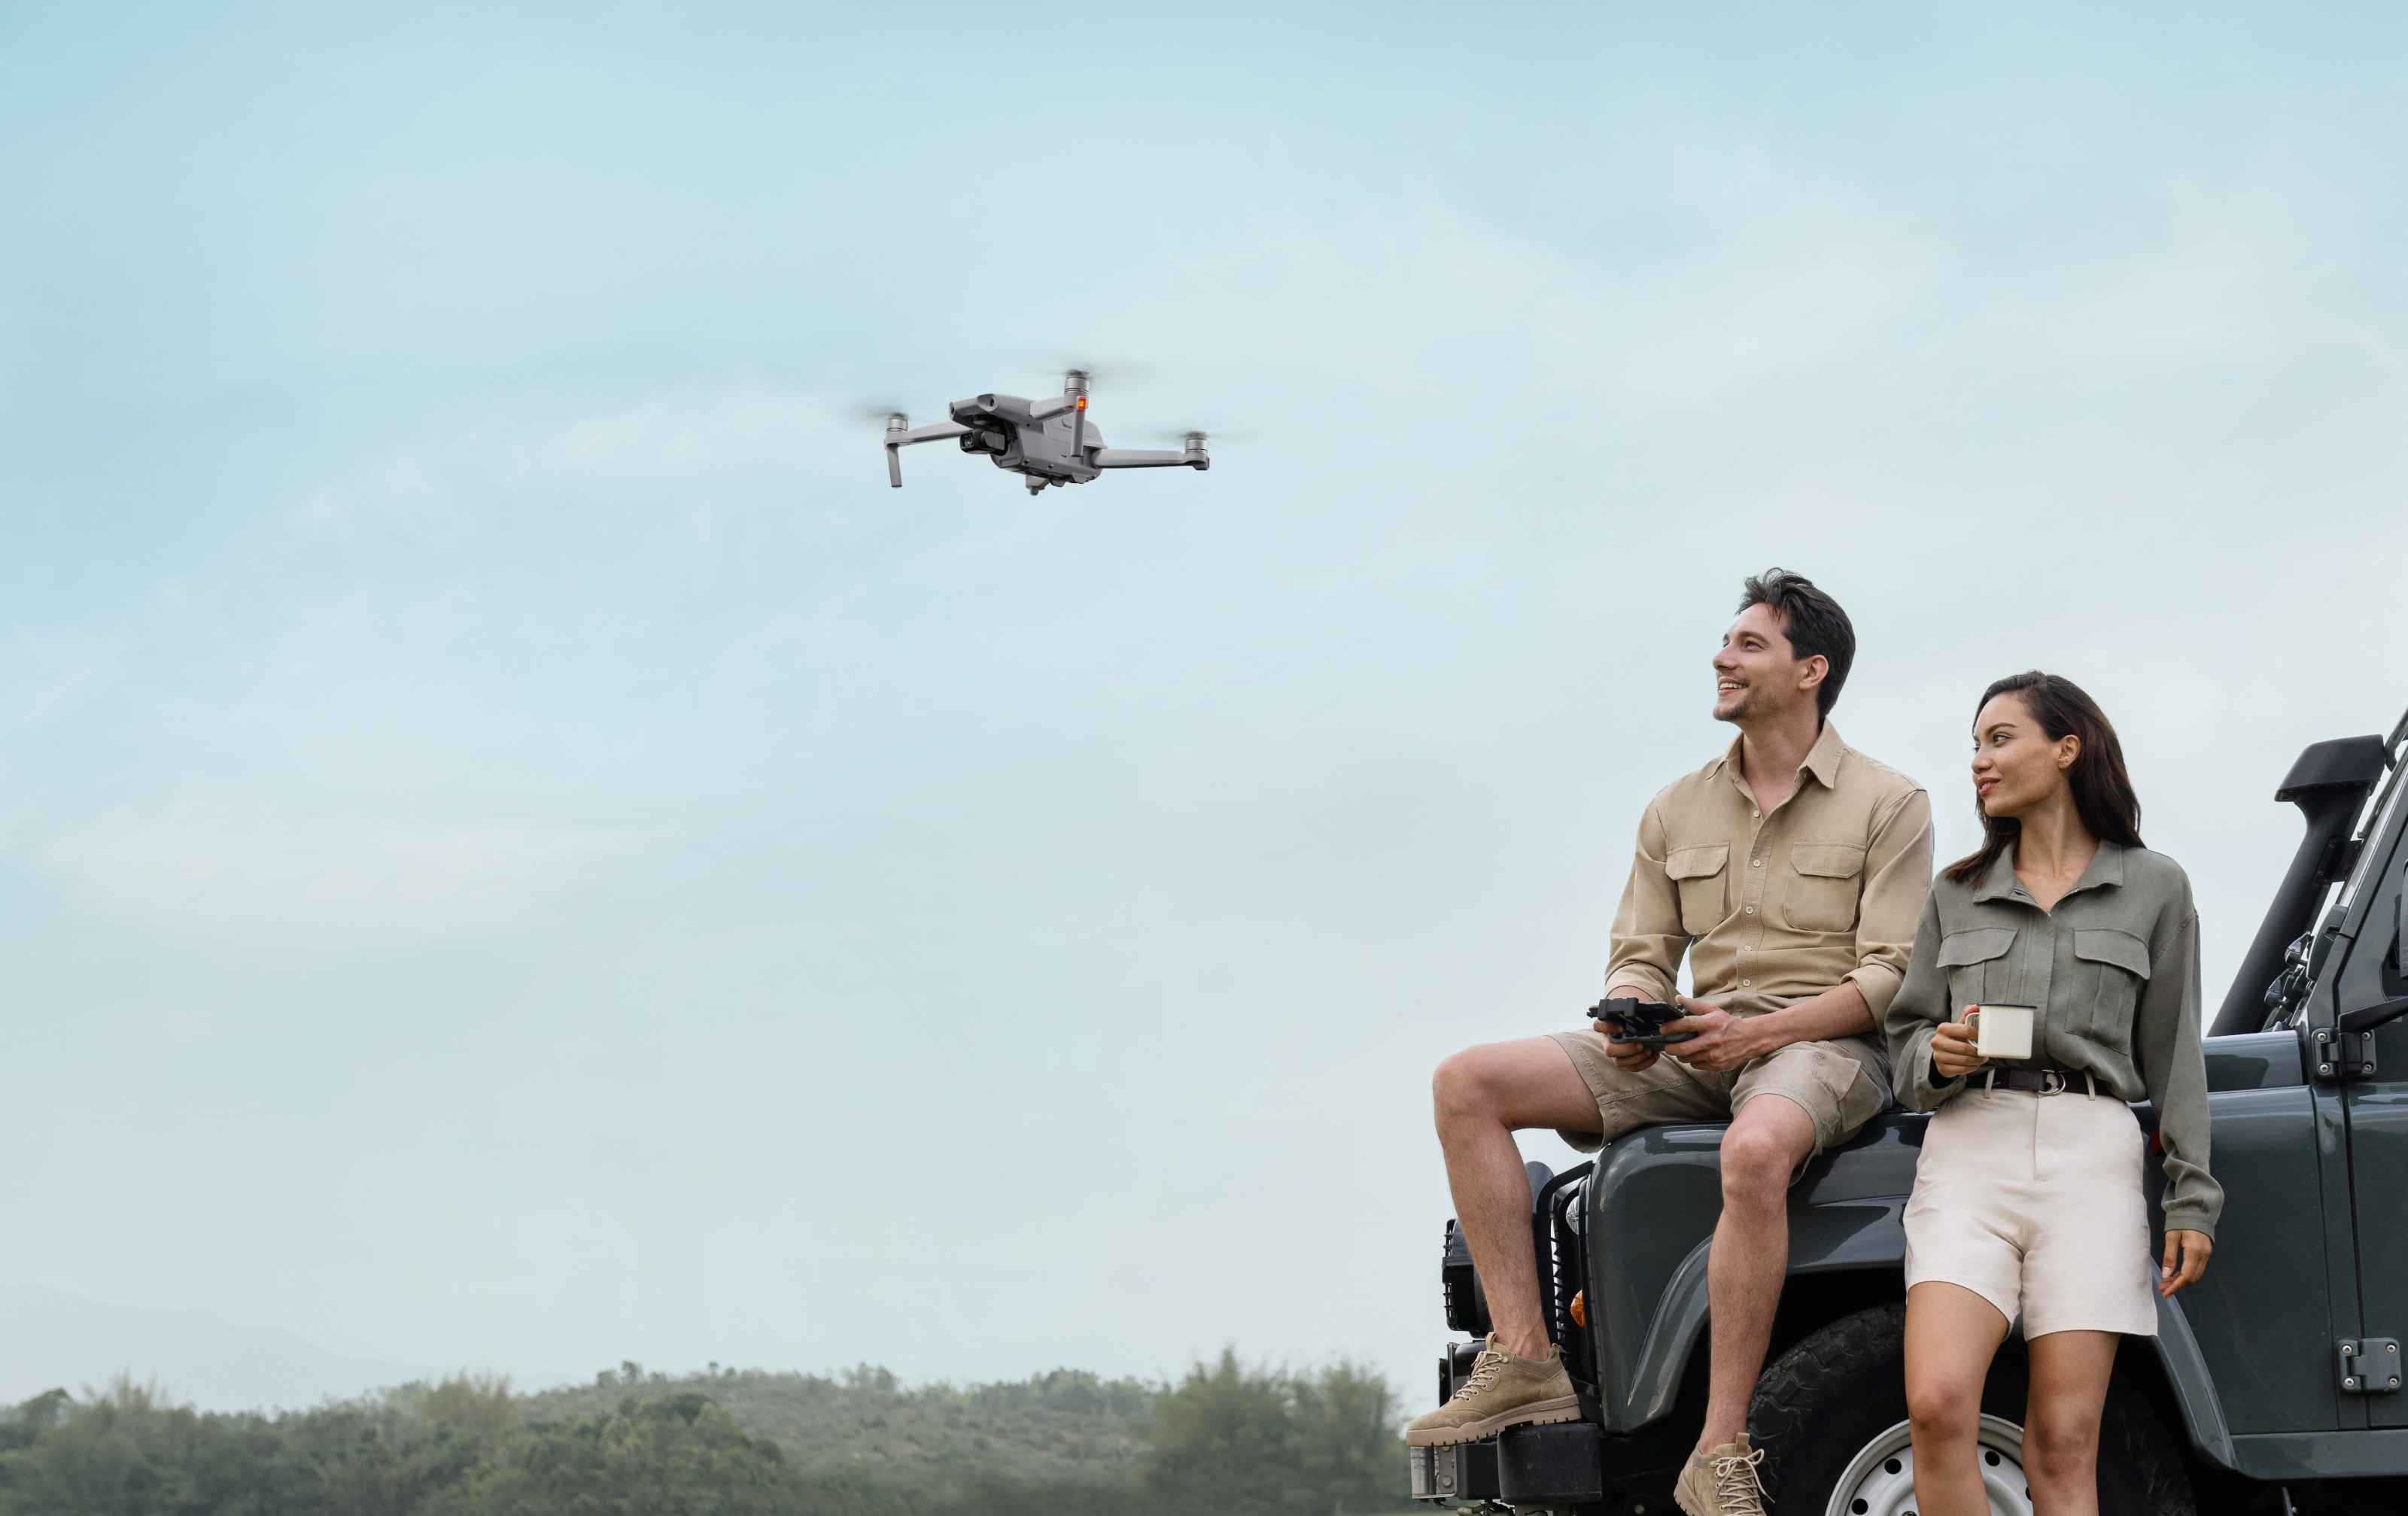 Setting the Record Straight on DJI Drone Data Security